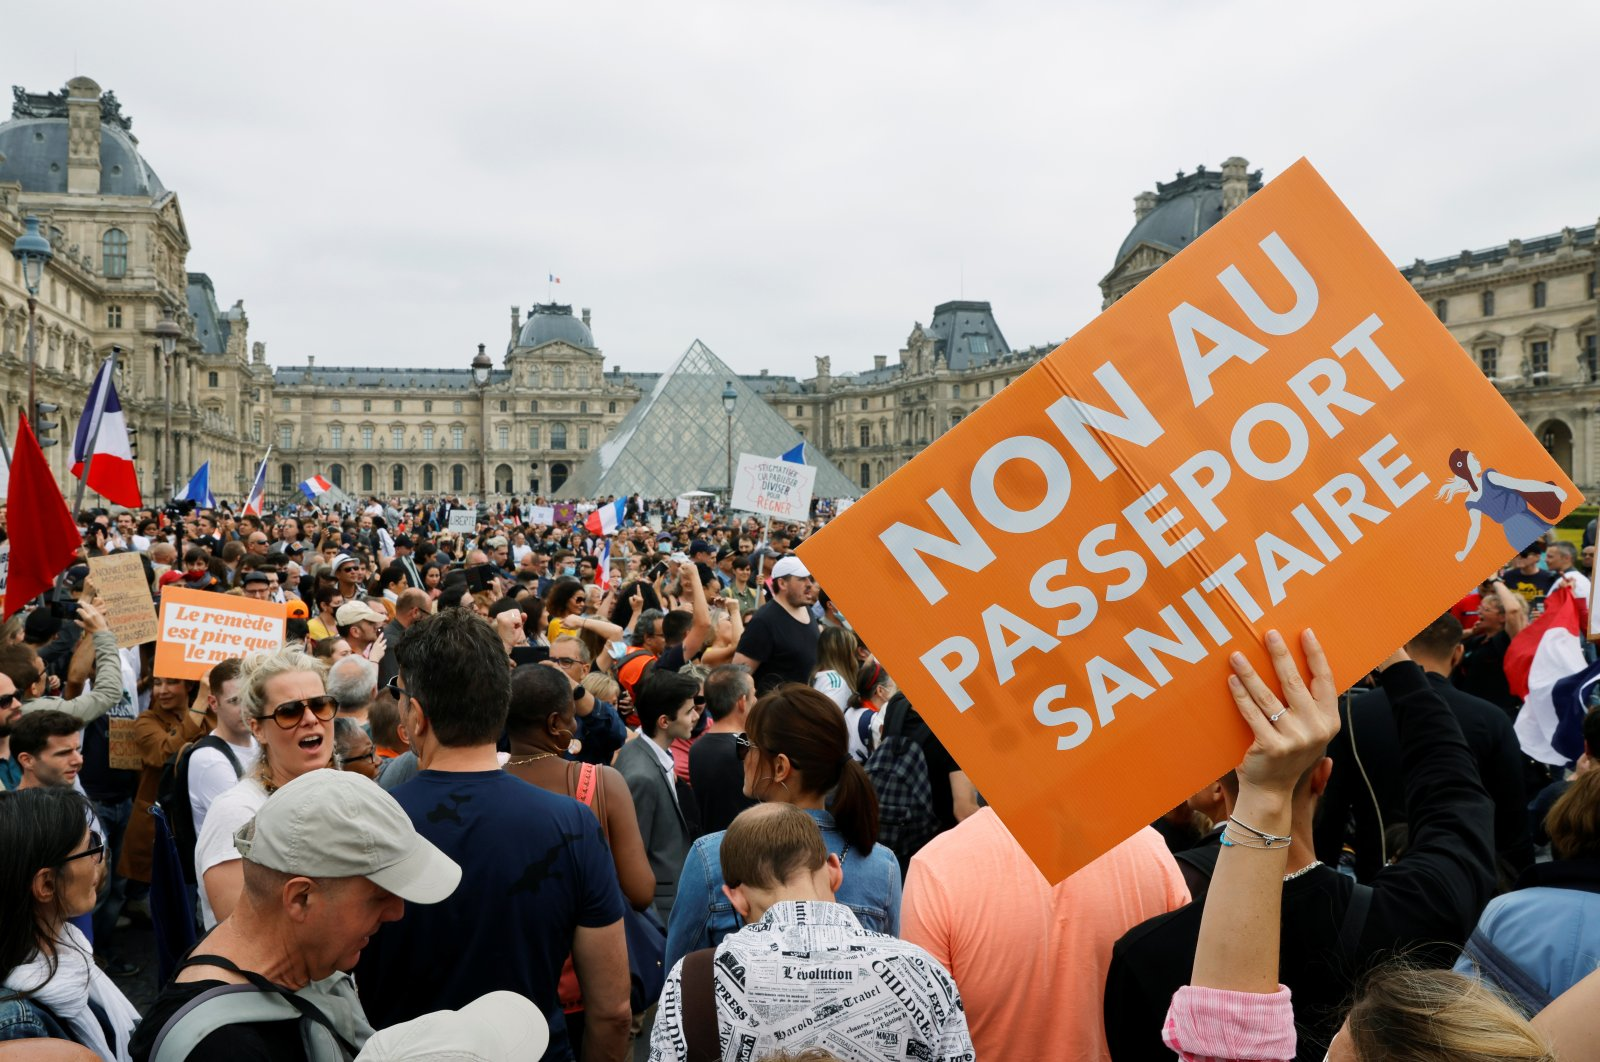 Demonstrators attend a protest against the new measures announced by French President Emmanuel Macron to fight the coronavirus disease (COVID-19) outbreak, in Paris, France, July 17, 2021. (REUTERS Photo)